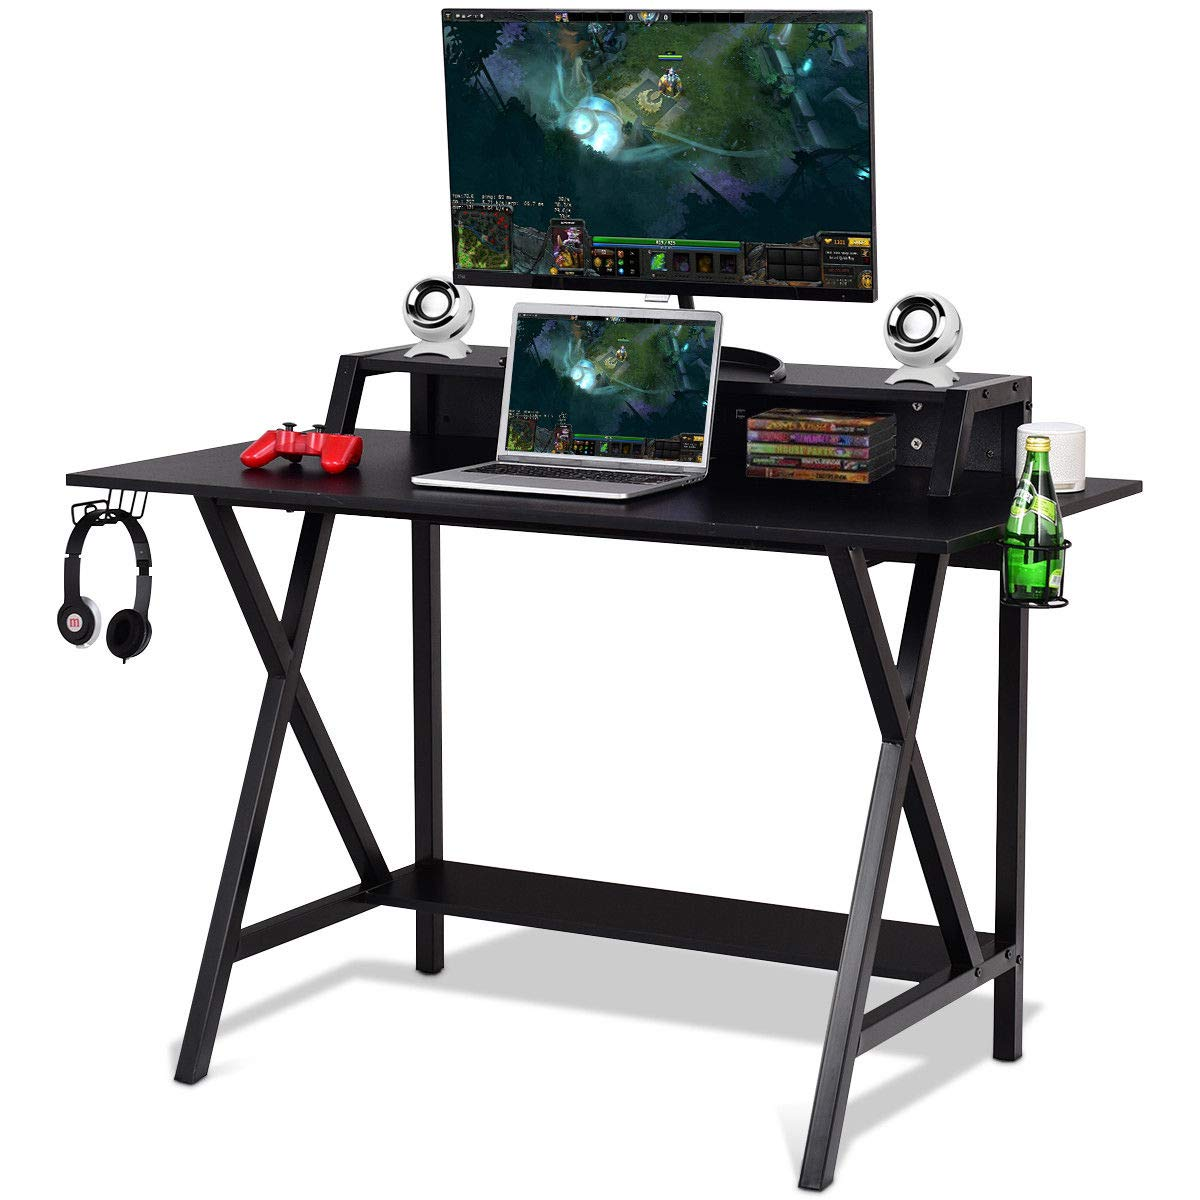 Tangkula Gaming Desk, Gaming Computer Desk, Gamers Computer Desk, Gaming Workstation with Cup & Headphone Holder, Built-in Wire-Management, Writing Desk for Home Or Office, Black by Tangkula